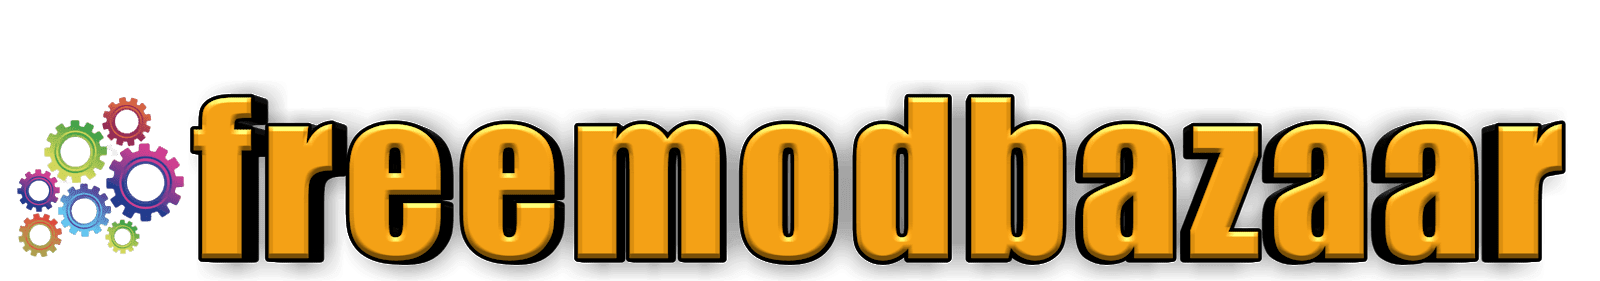 freemodbazaar.ml